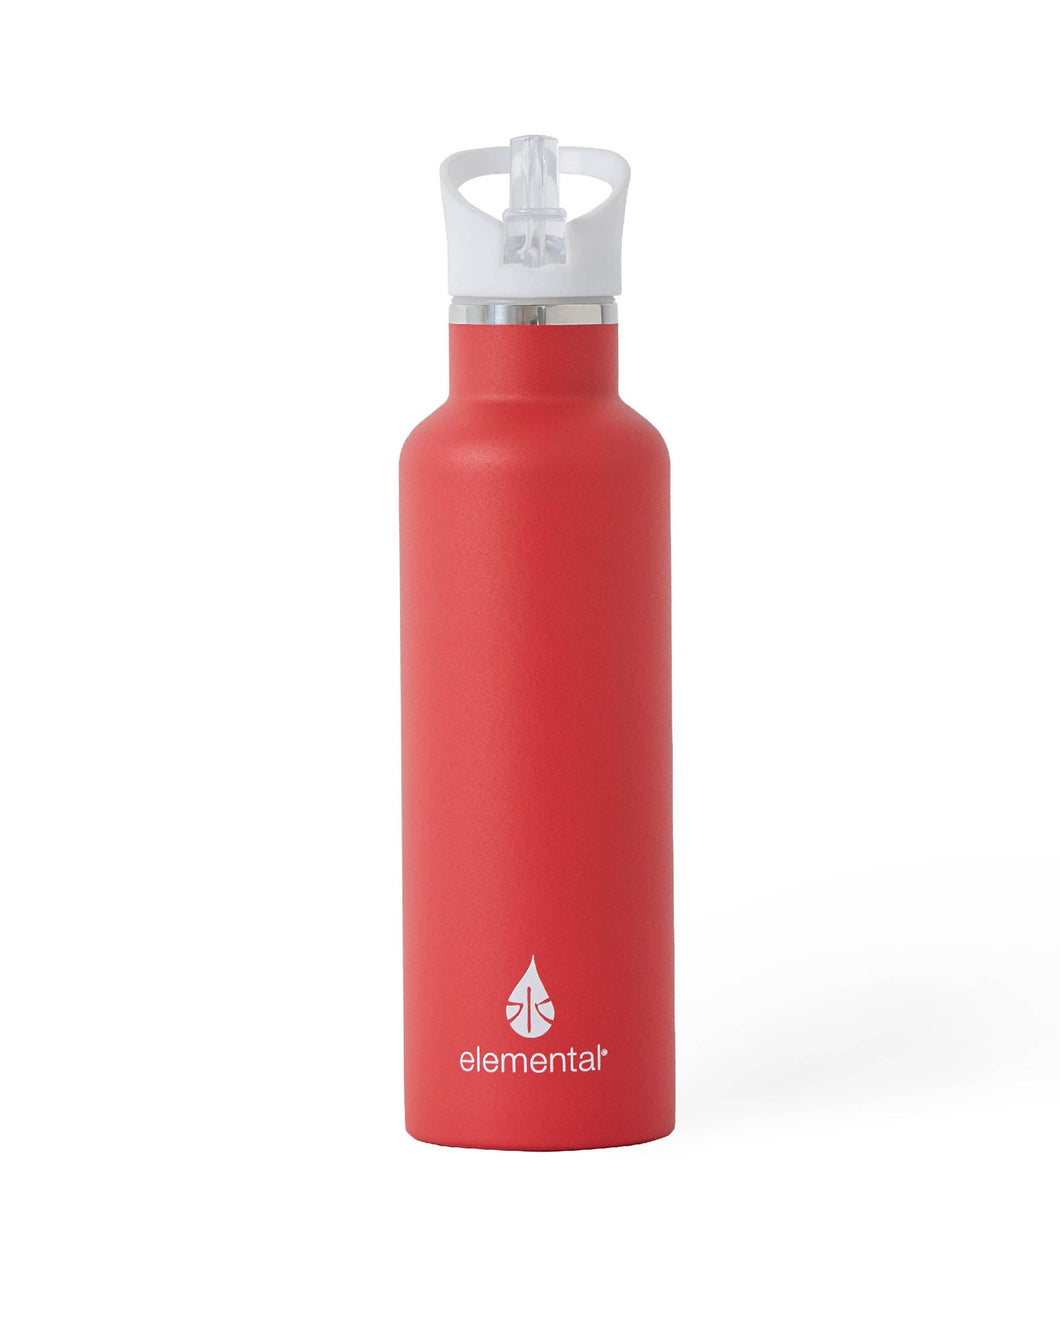 25 oz. Elemental Stainless Steel Sport Water Bottle - Red with White Sport Top